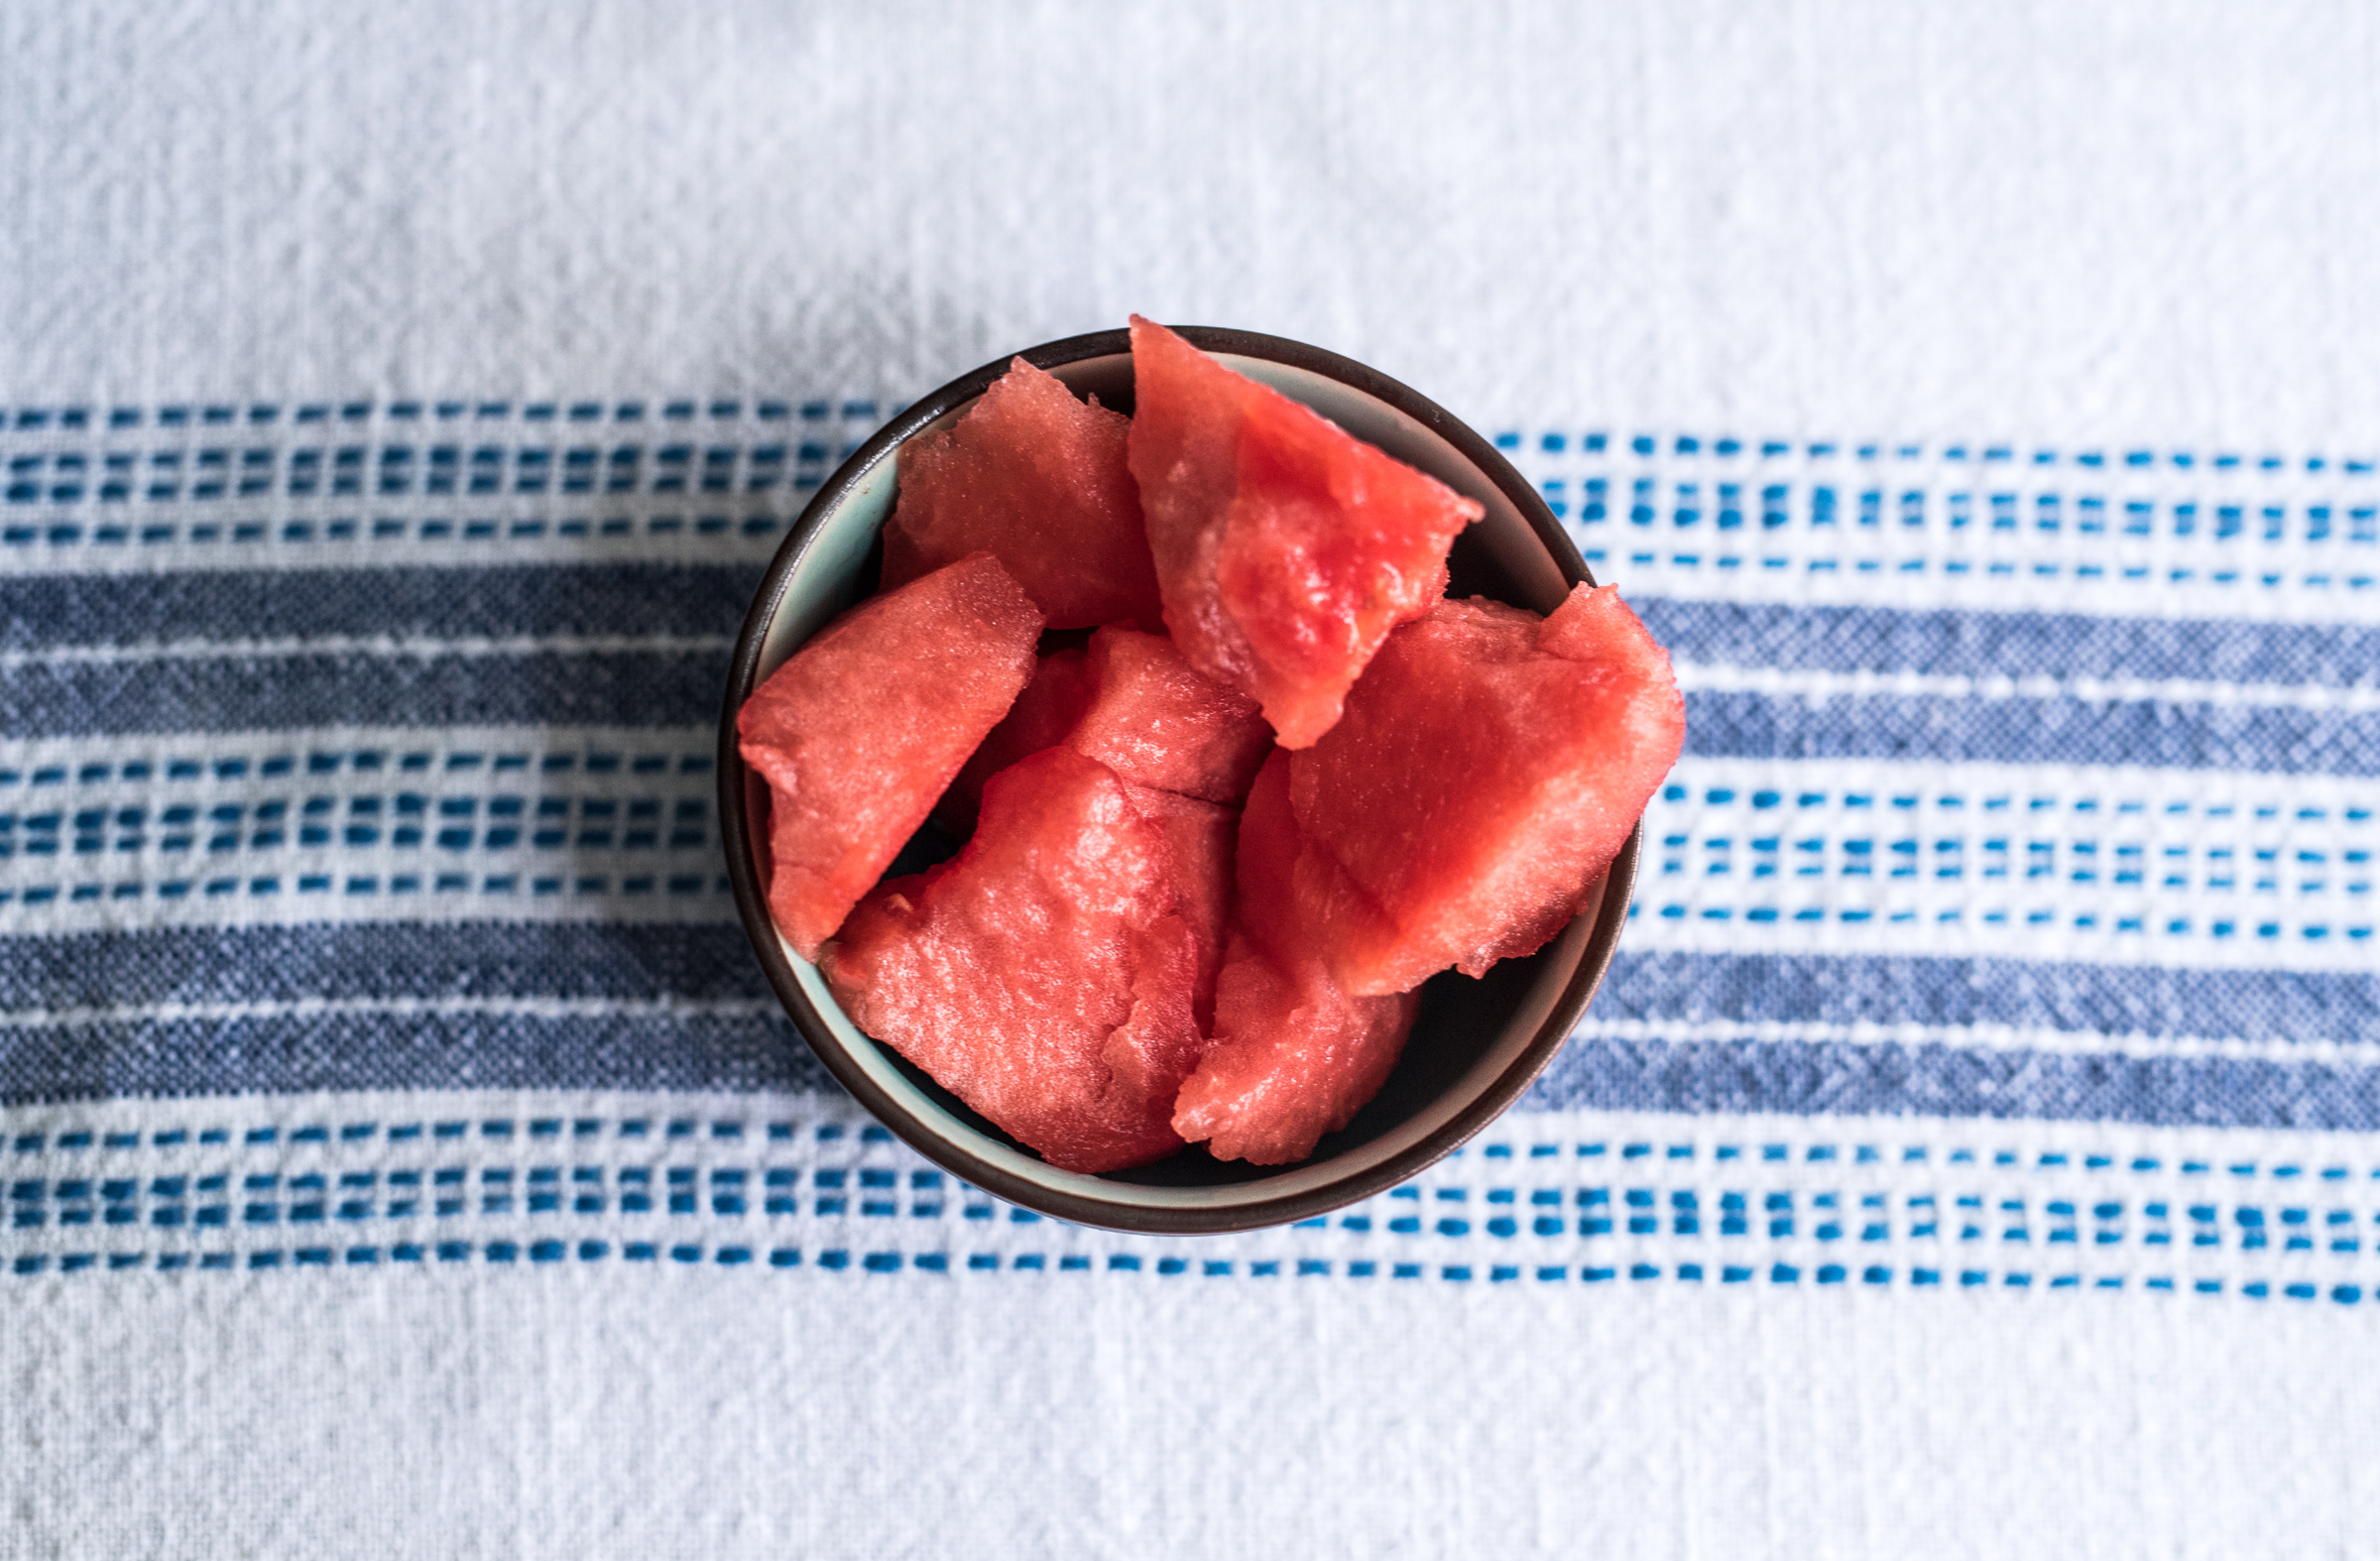 Like the juicy flesh, the seeds and rind of a watermelon can both be transformed into delicious and healthful snacks.